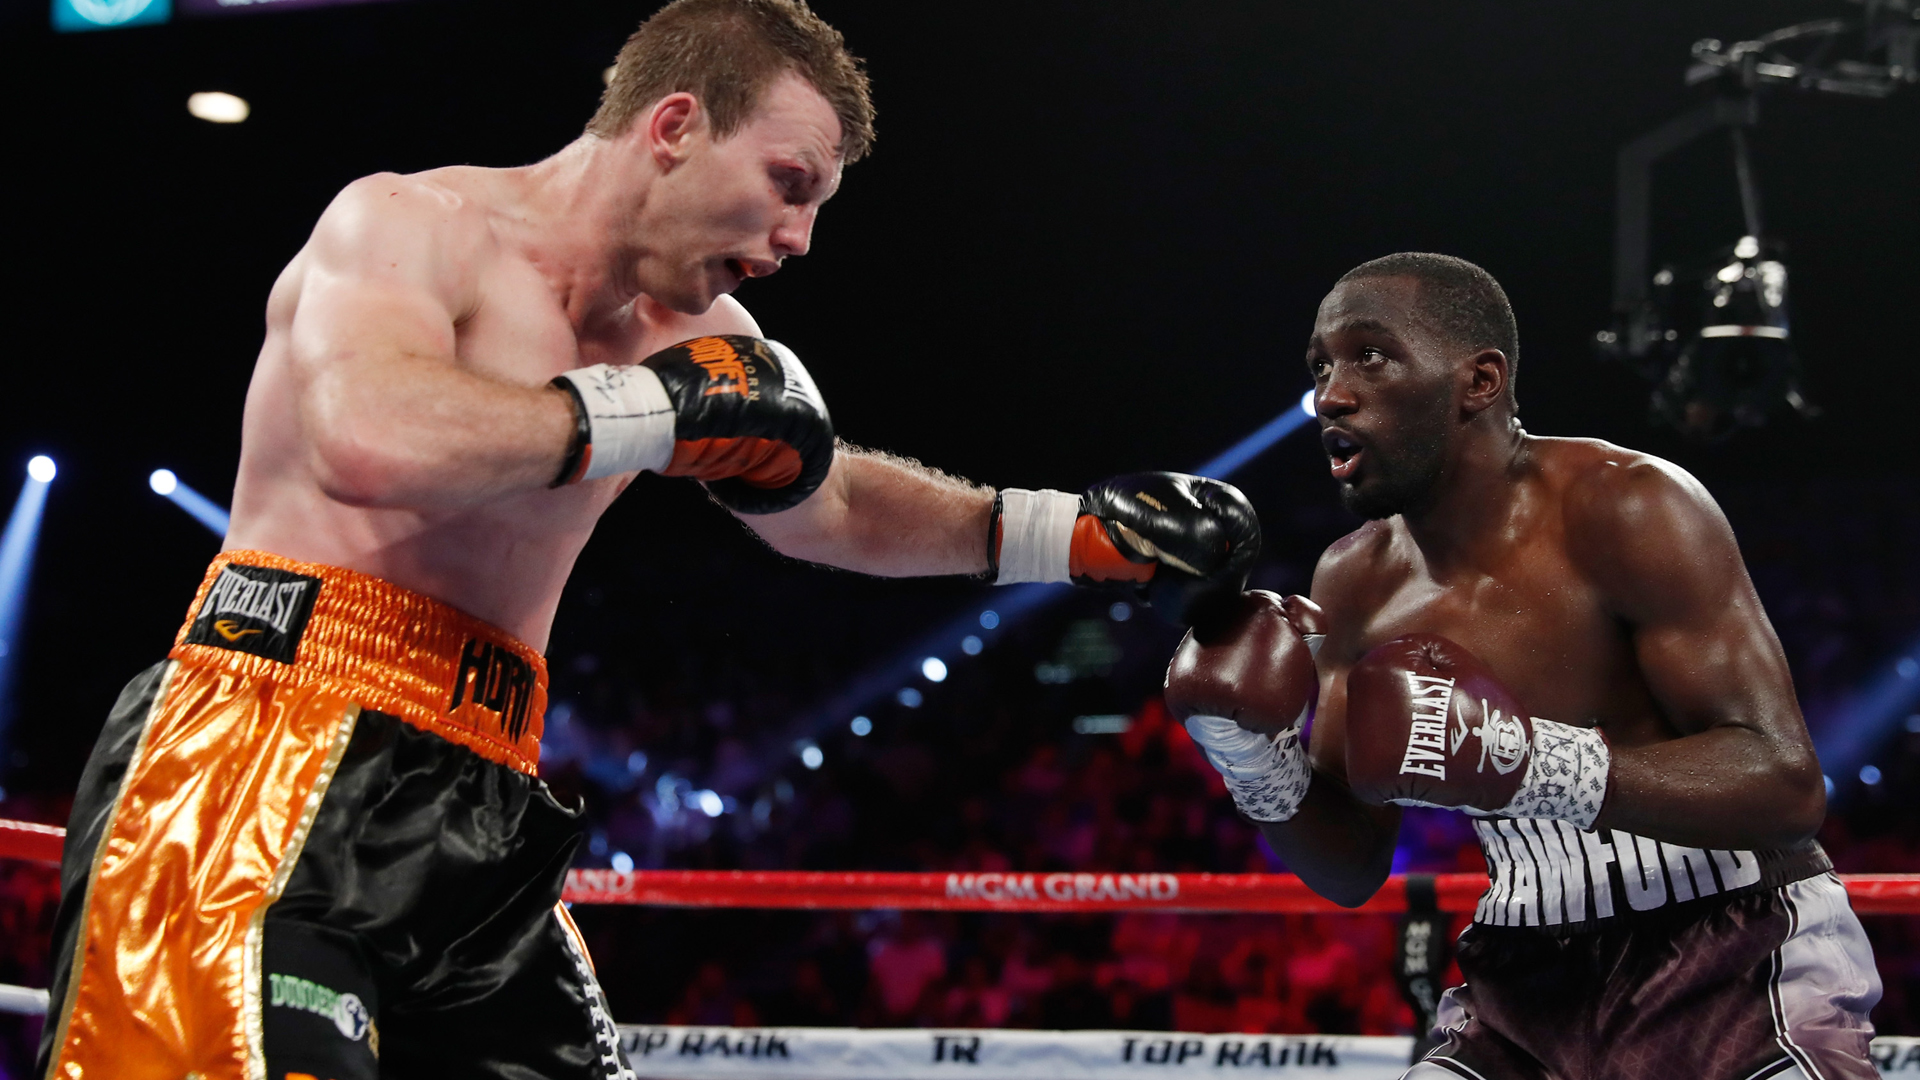 'We want them all': Terence Crawford is just getting started